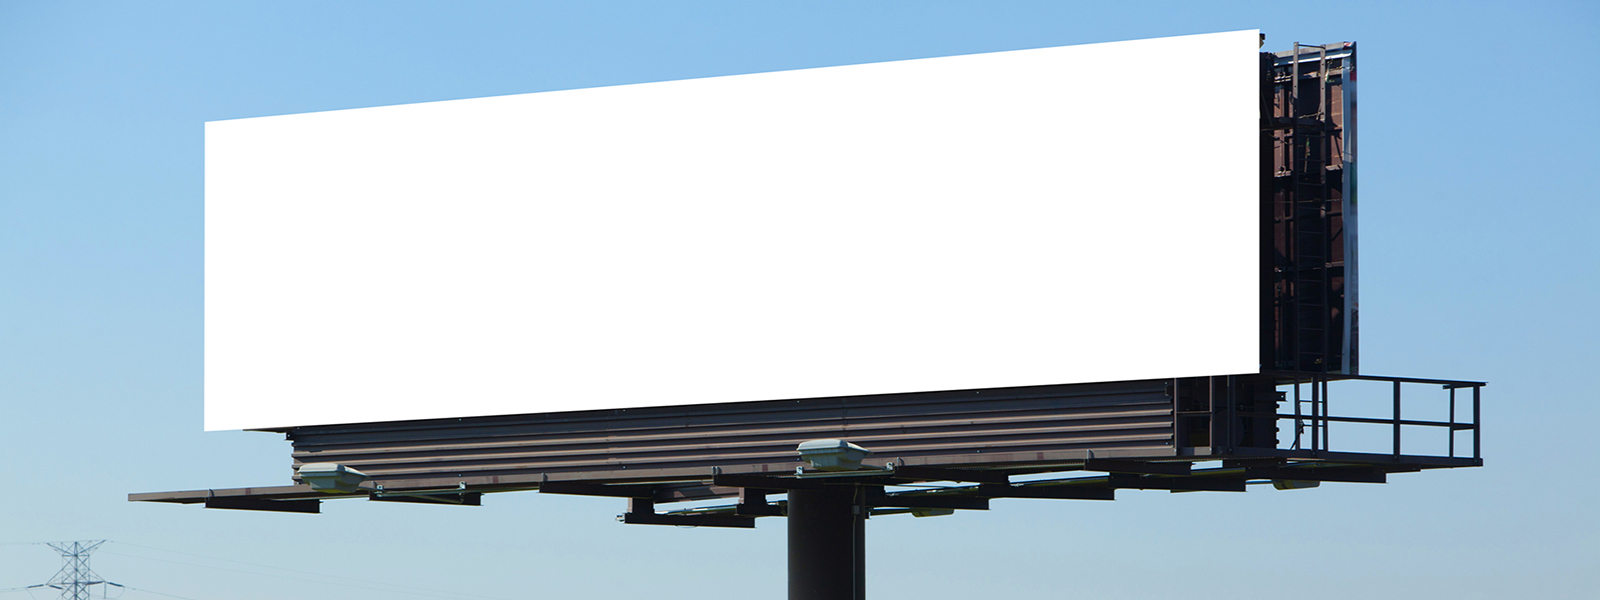 Digital Billboards for Political Campaigns